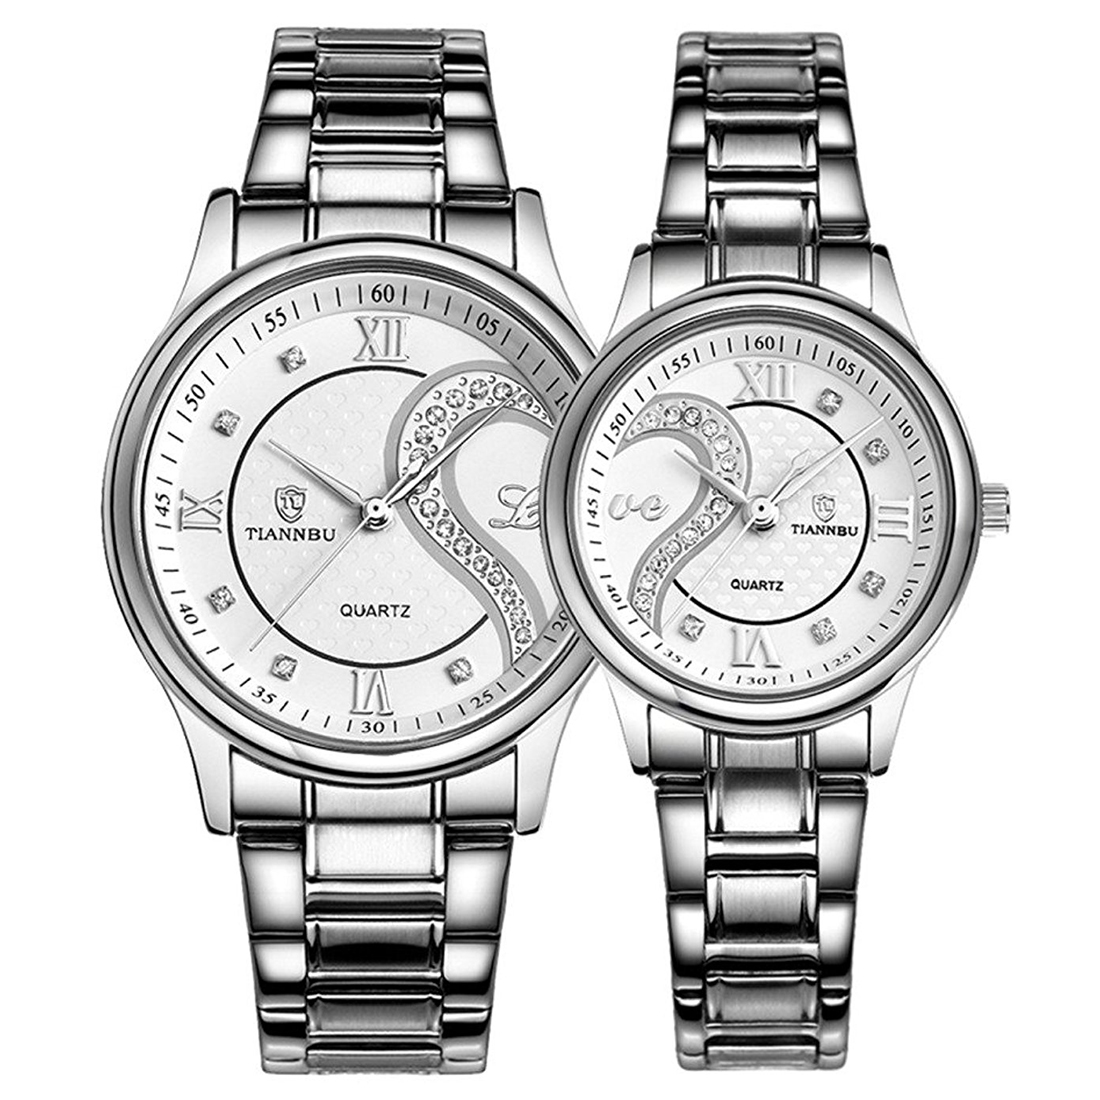 TIANNBU Couple Watches Quartz Waterproof Wrist watches for Lovers Pair white Dial Stainless Steel Band fashion couple s stainless steel digital quartz wrist watches silver white 1 x 377 2 pcs